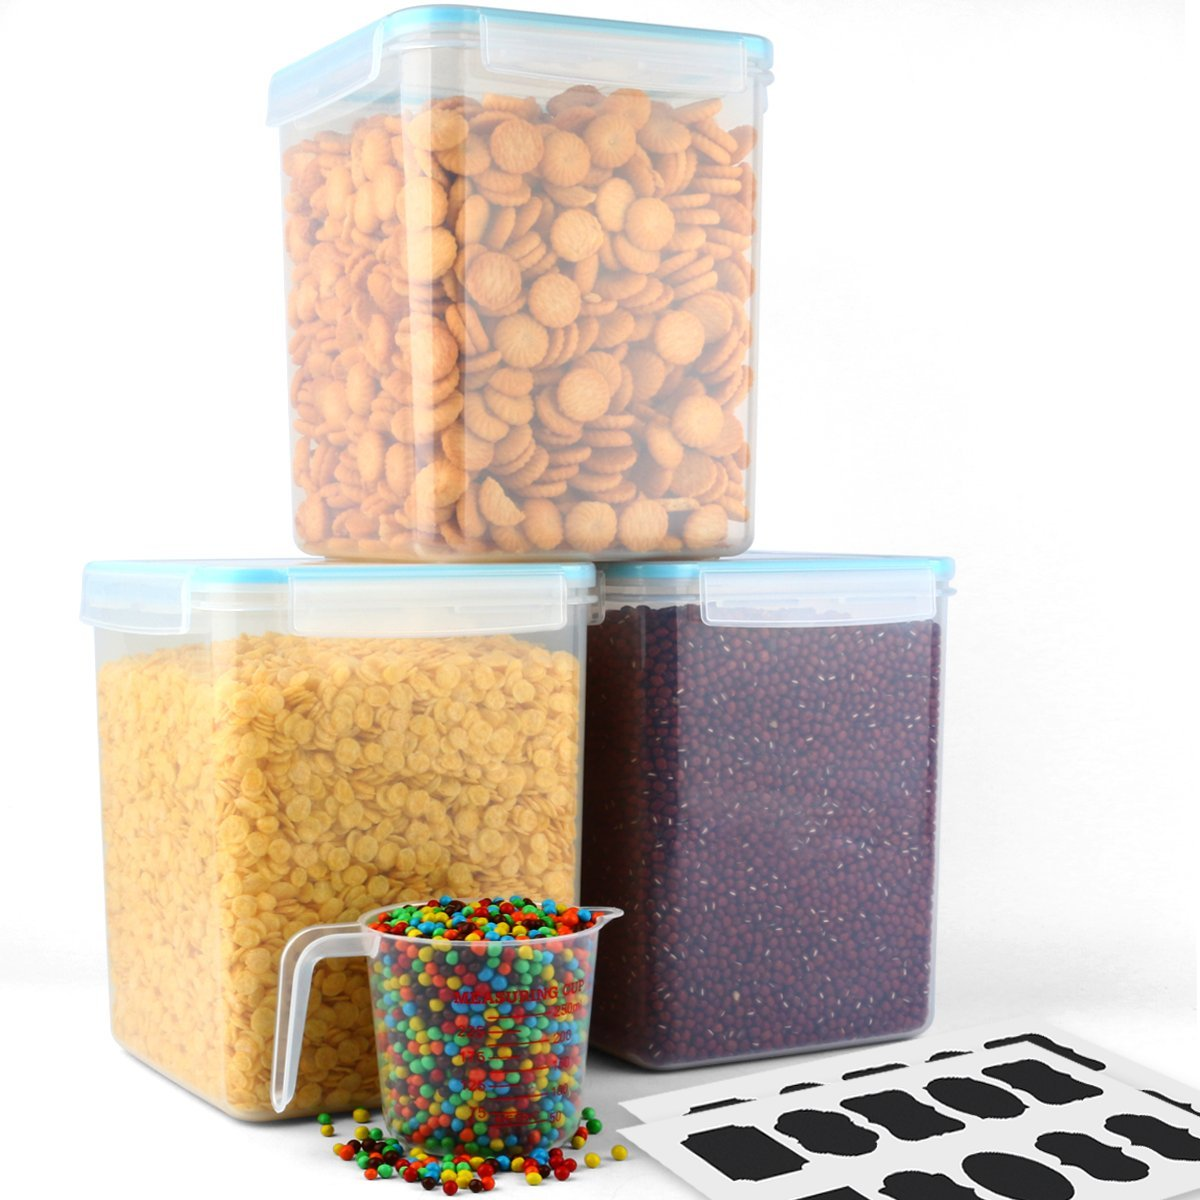 MCIRCO 5.2L(175 Oz.) Food Storage Container,Tall Large Square Airtight Food Container,Flour/Chip Container, Set of 3